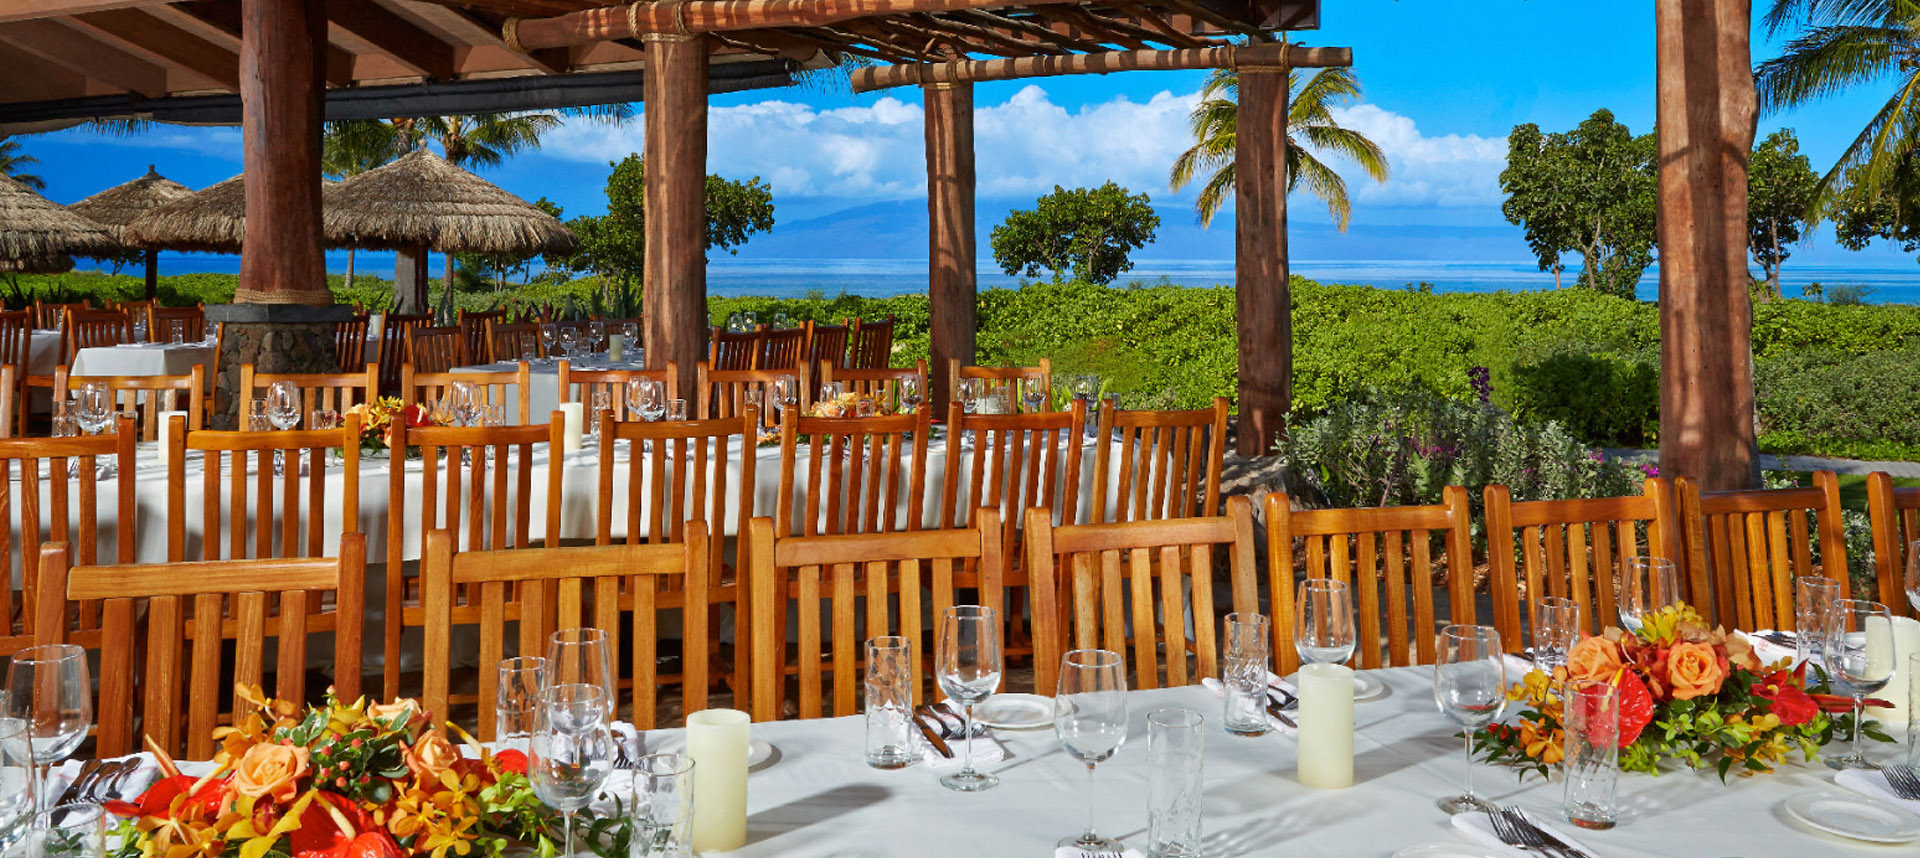 Large dining area with multiple tables in front of the ocean